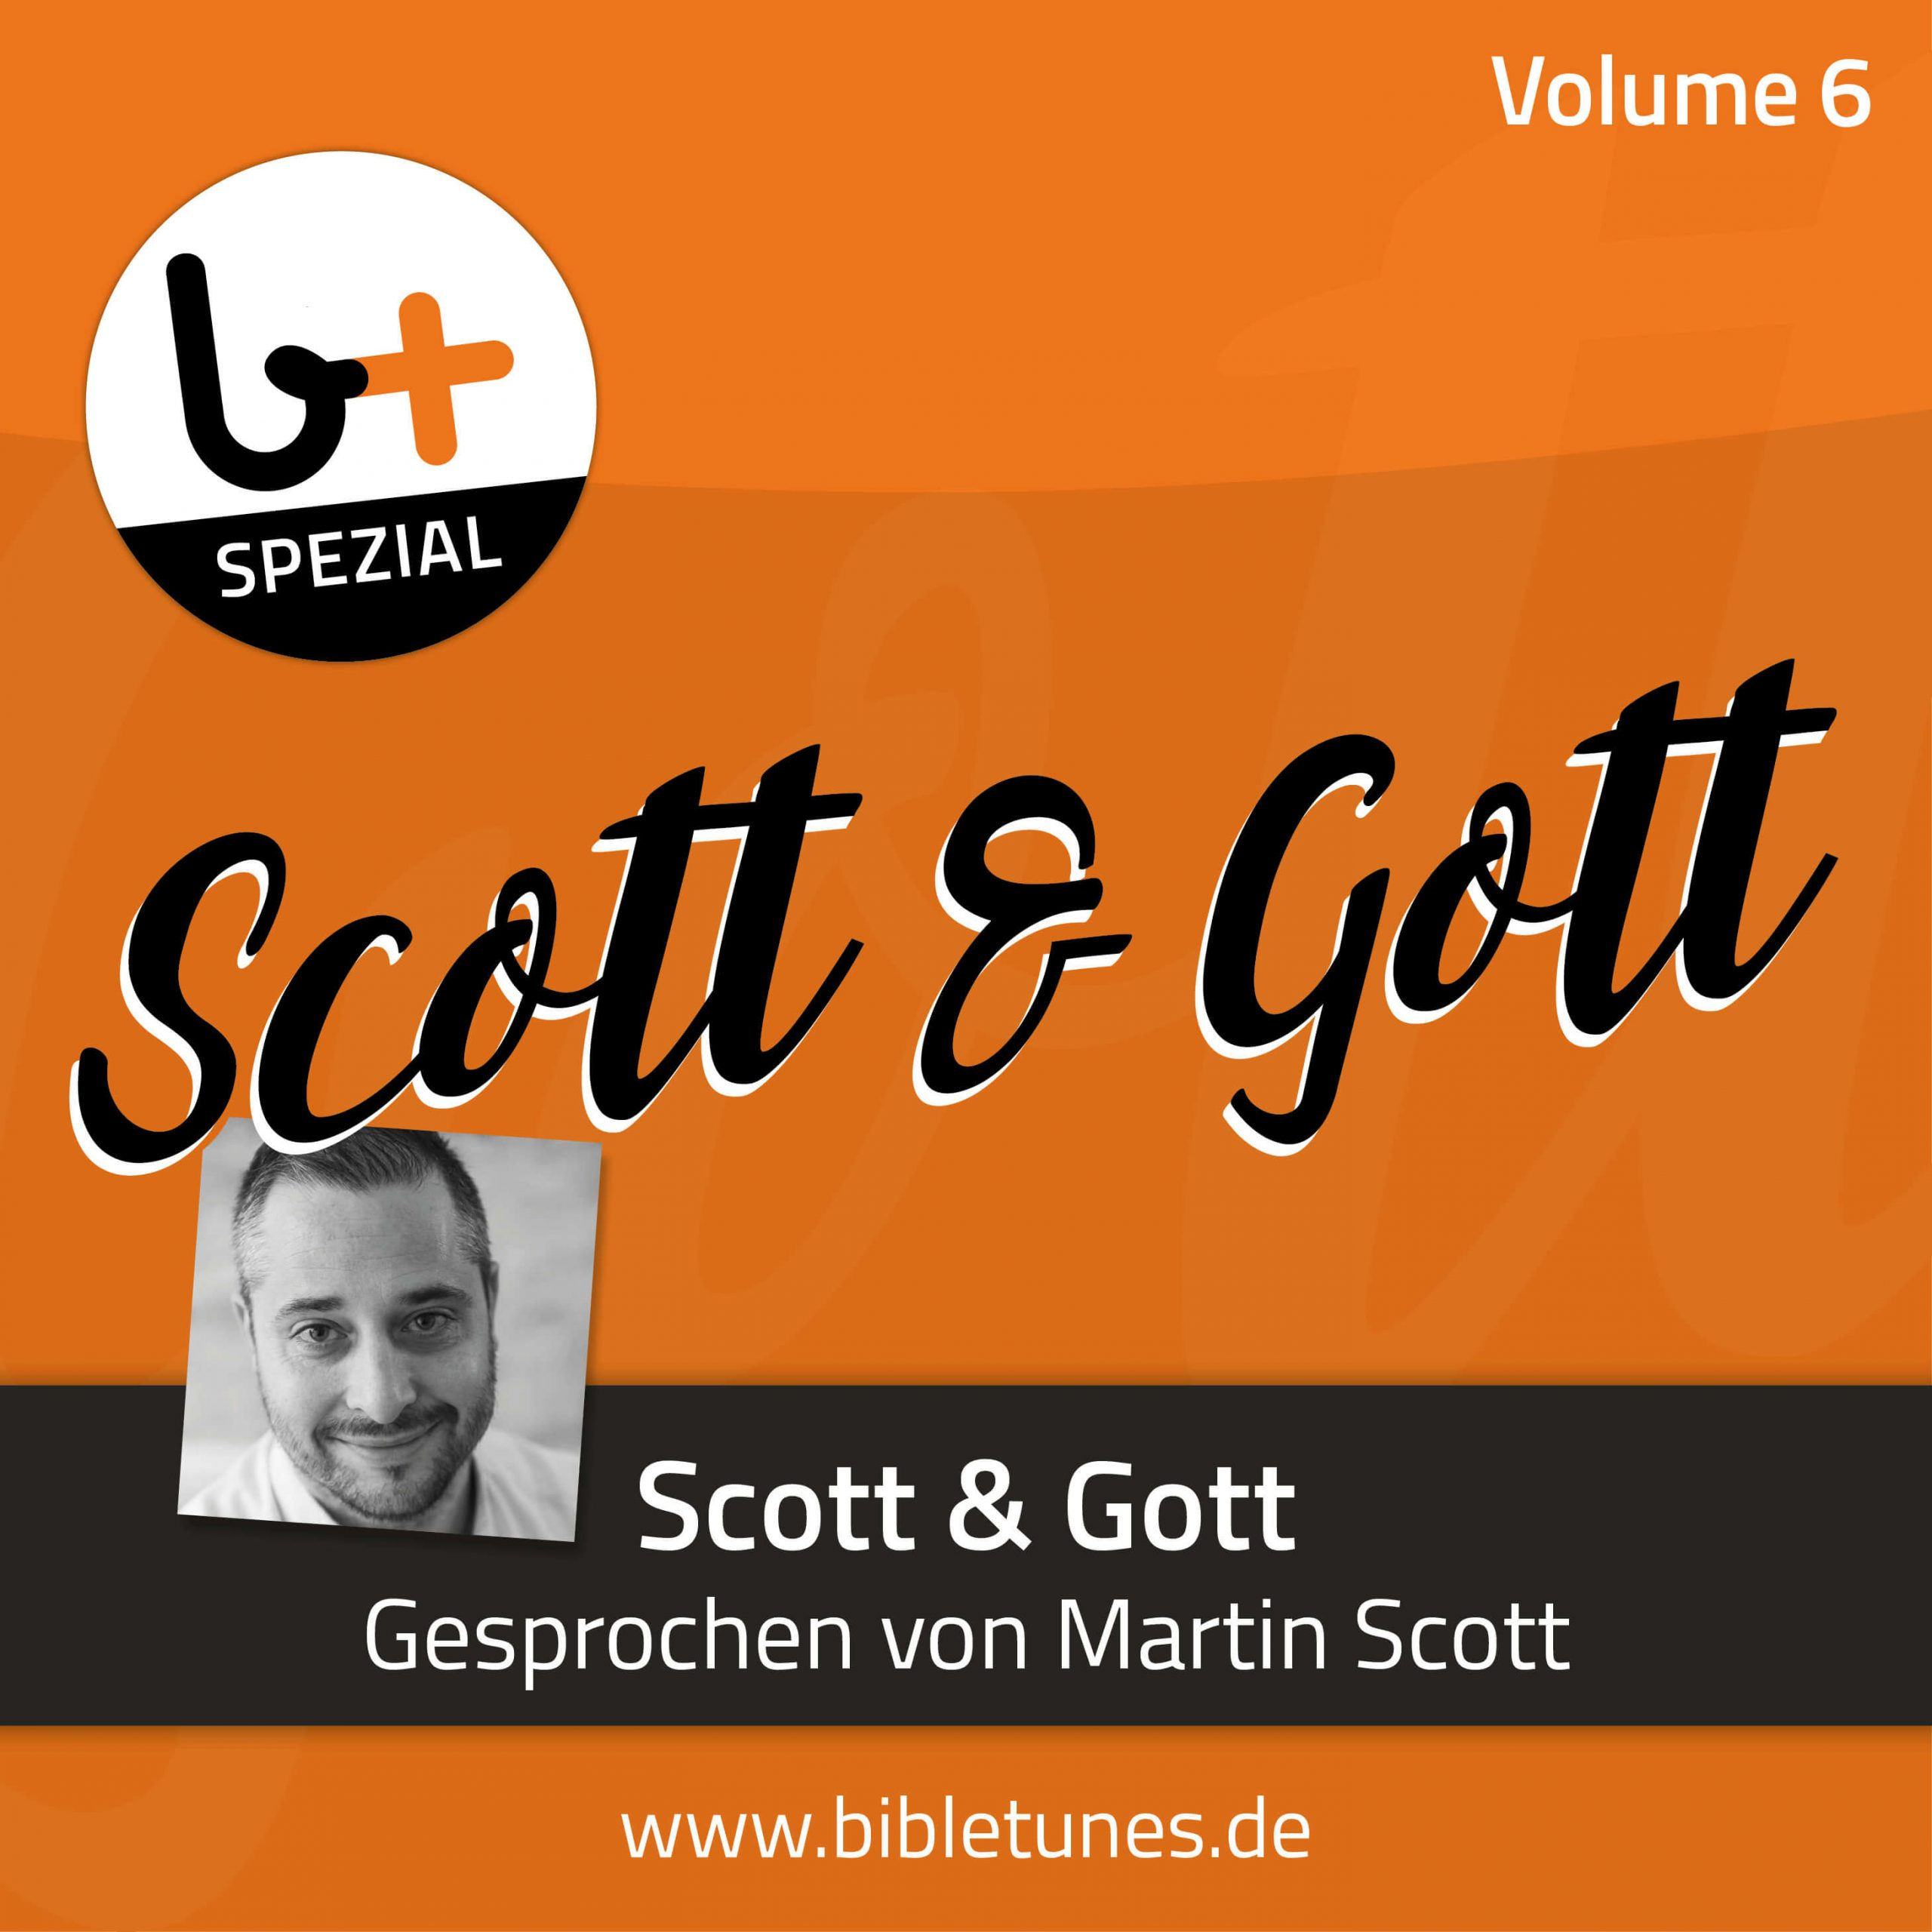 Scott & Gott – Volume 6 Cover